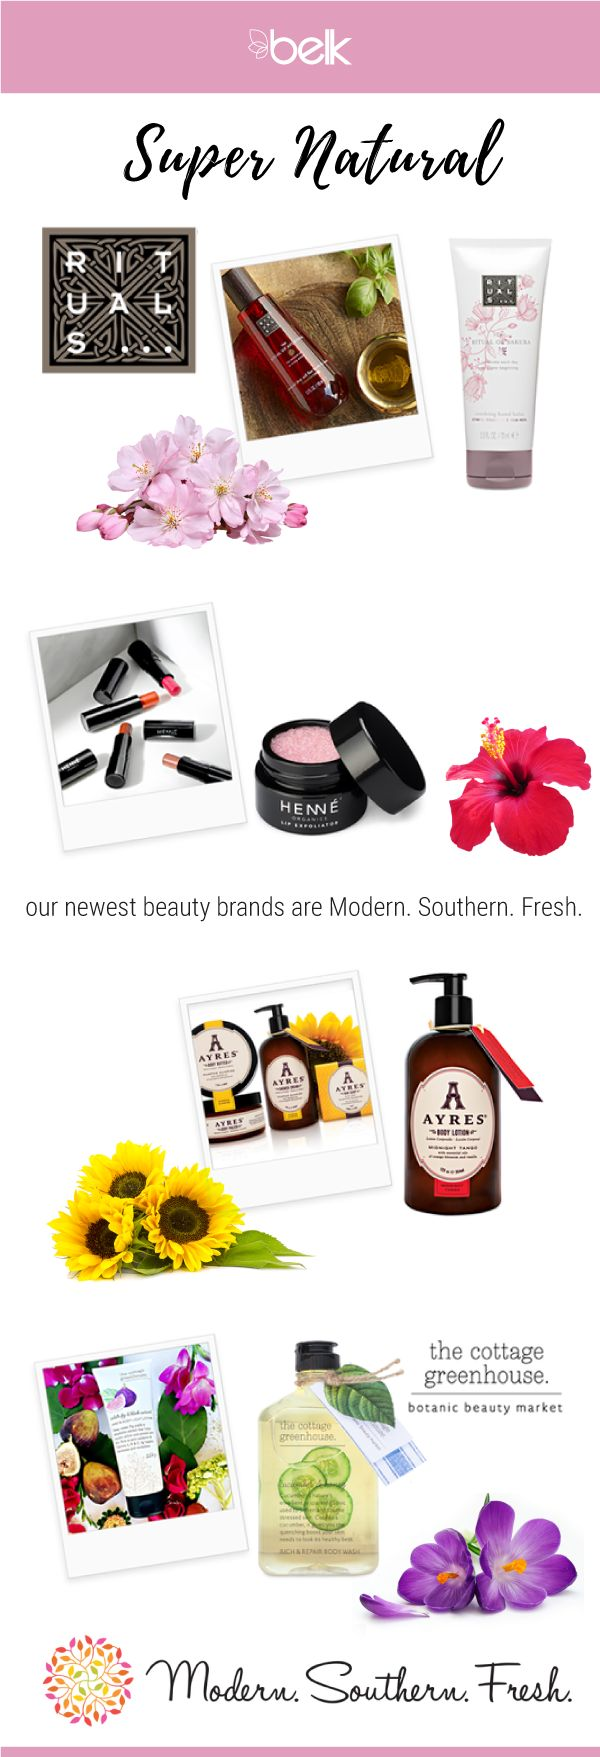 You spend so much time worrying about what you put in your body, why not what you put on it? Take a more natural approach to your skin-care routine and makeup with Modern.Southern.Fresh., your one-stop shop for the best in natural and organic beauty! Find everything from sheet masks to foundation in store and online at belk.com.